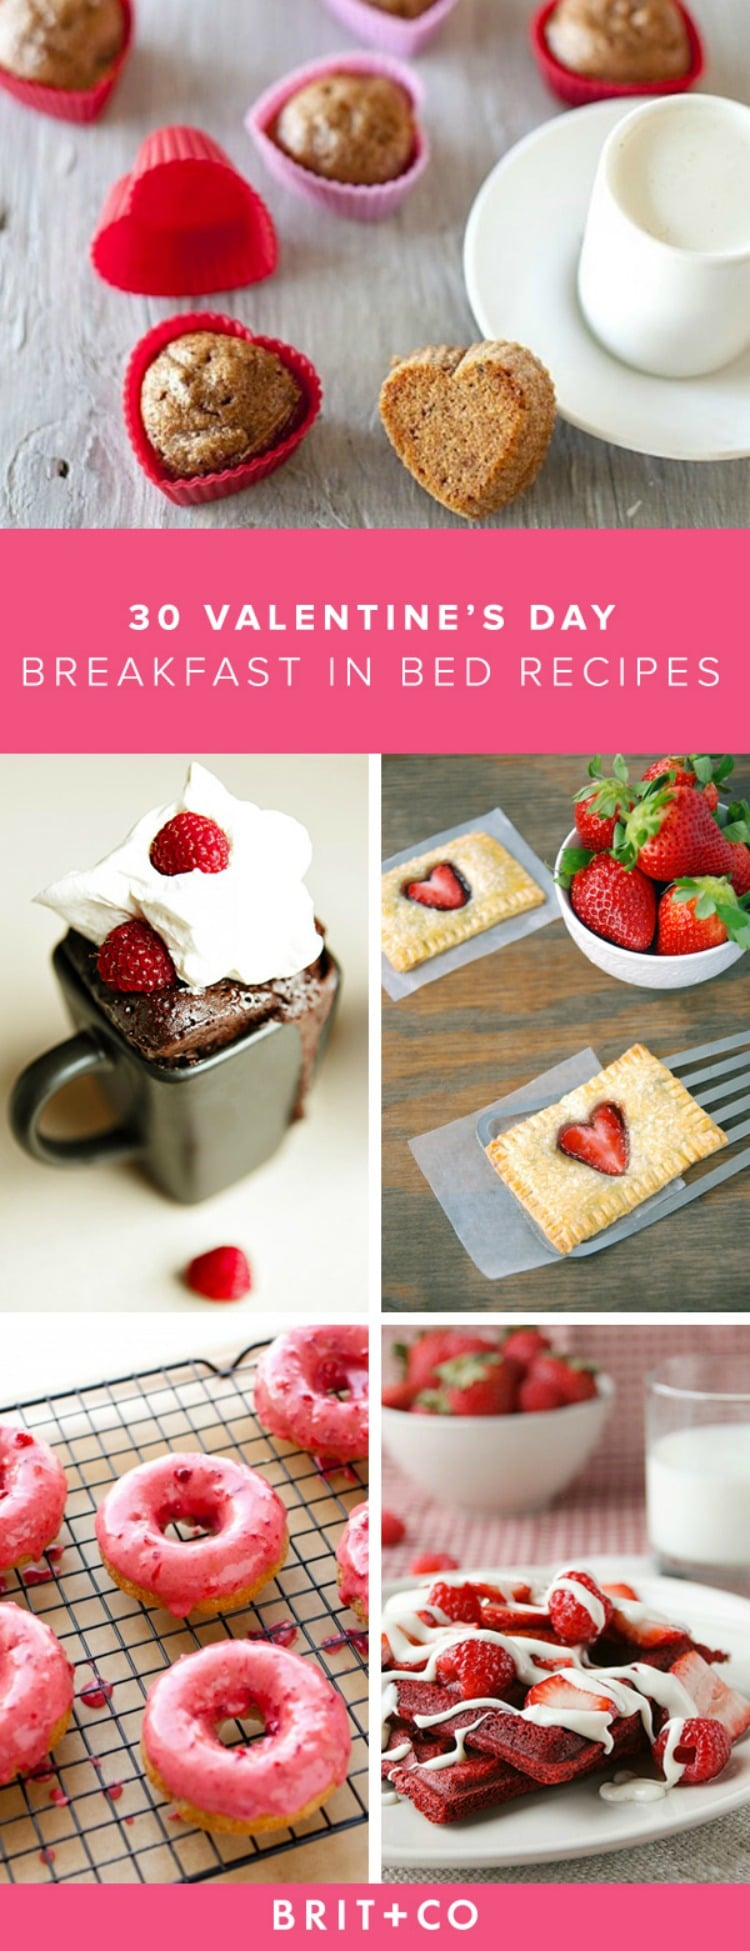 30-valentines-day-breakfast-in-bed recipes from Brit + Co